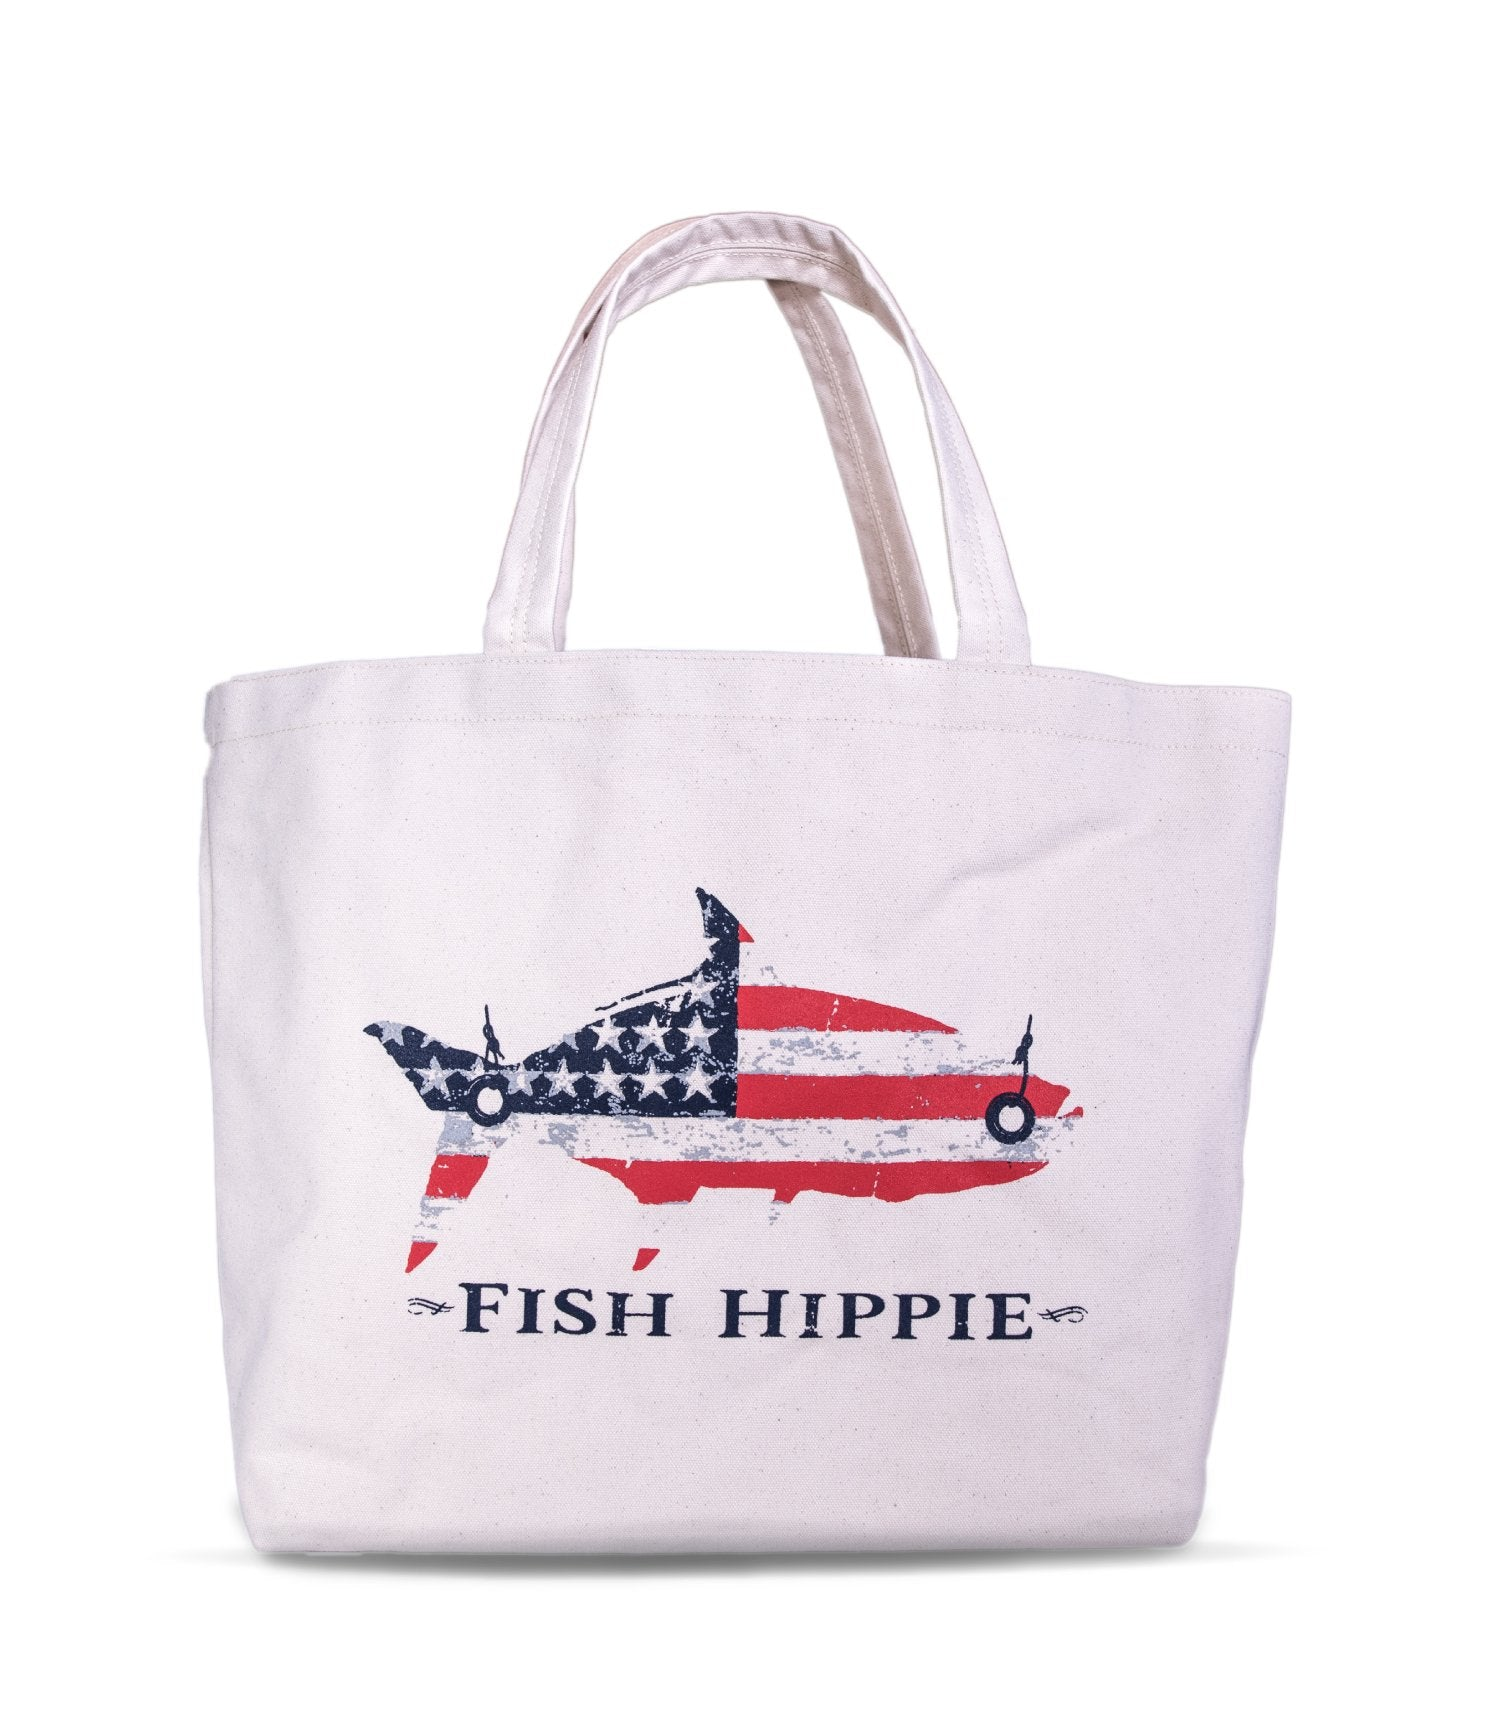 Fish Hippie  Printed Canvas Tote